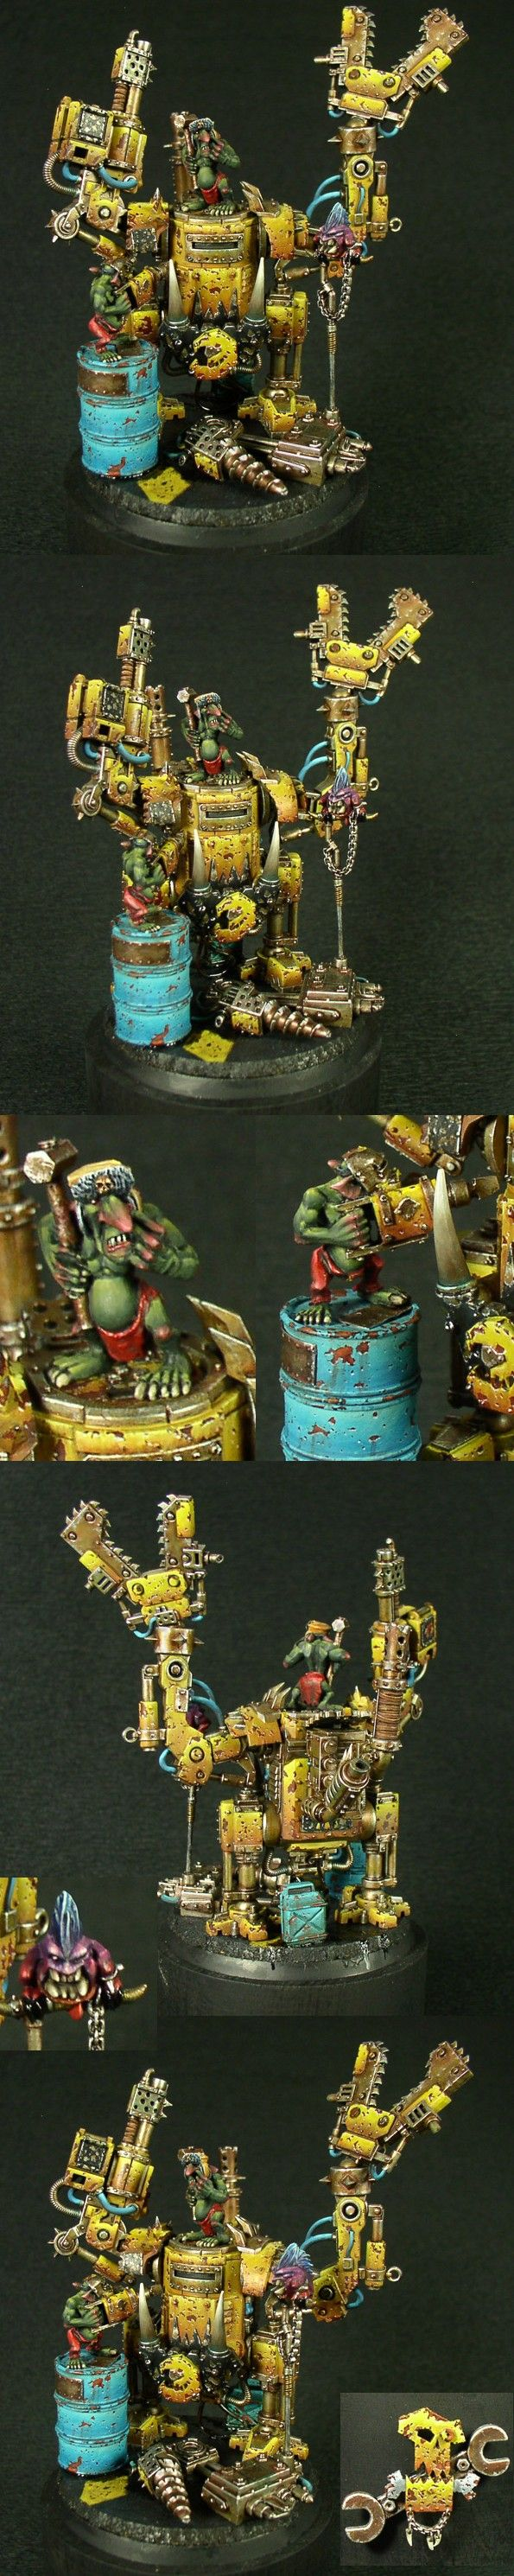 Upkeep - Gold Demon@ Italian GD2011  Manufacturer: Games Workshop